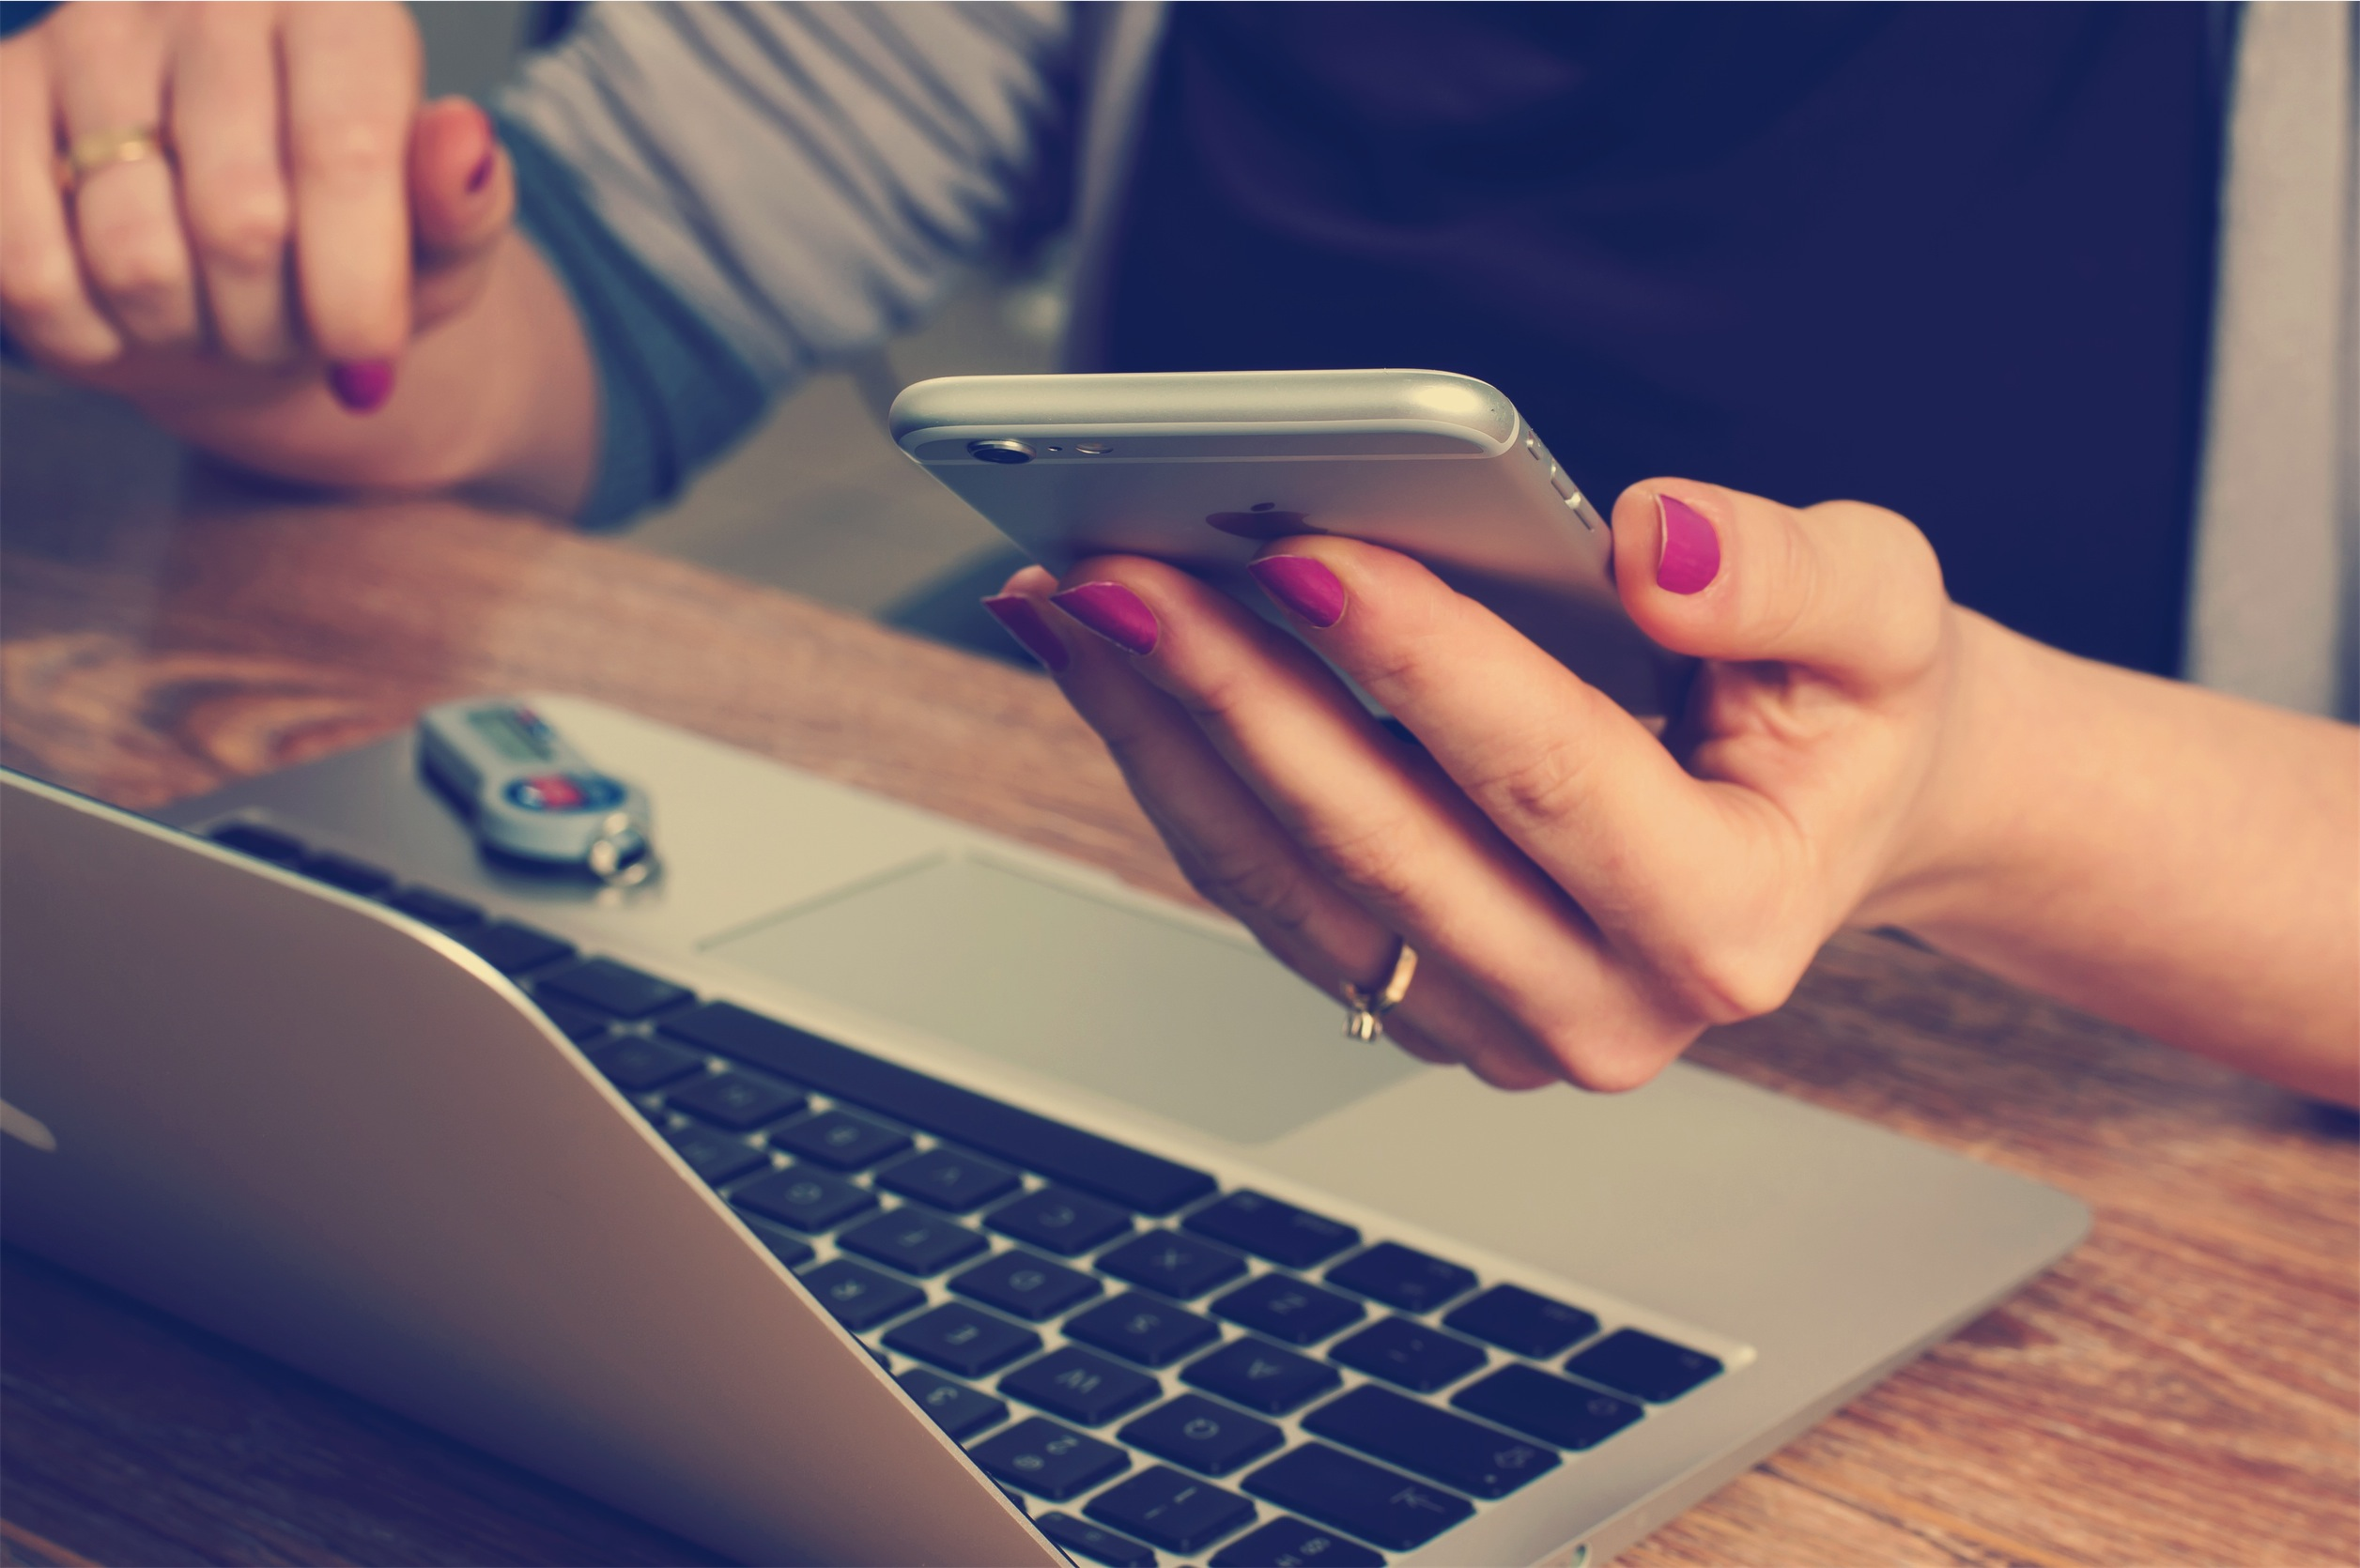 Rouse Your Silent Prospects: How to Craft Emails and Voicemails that Get Responses